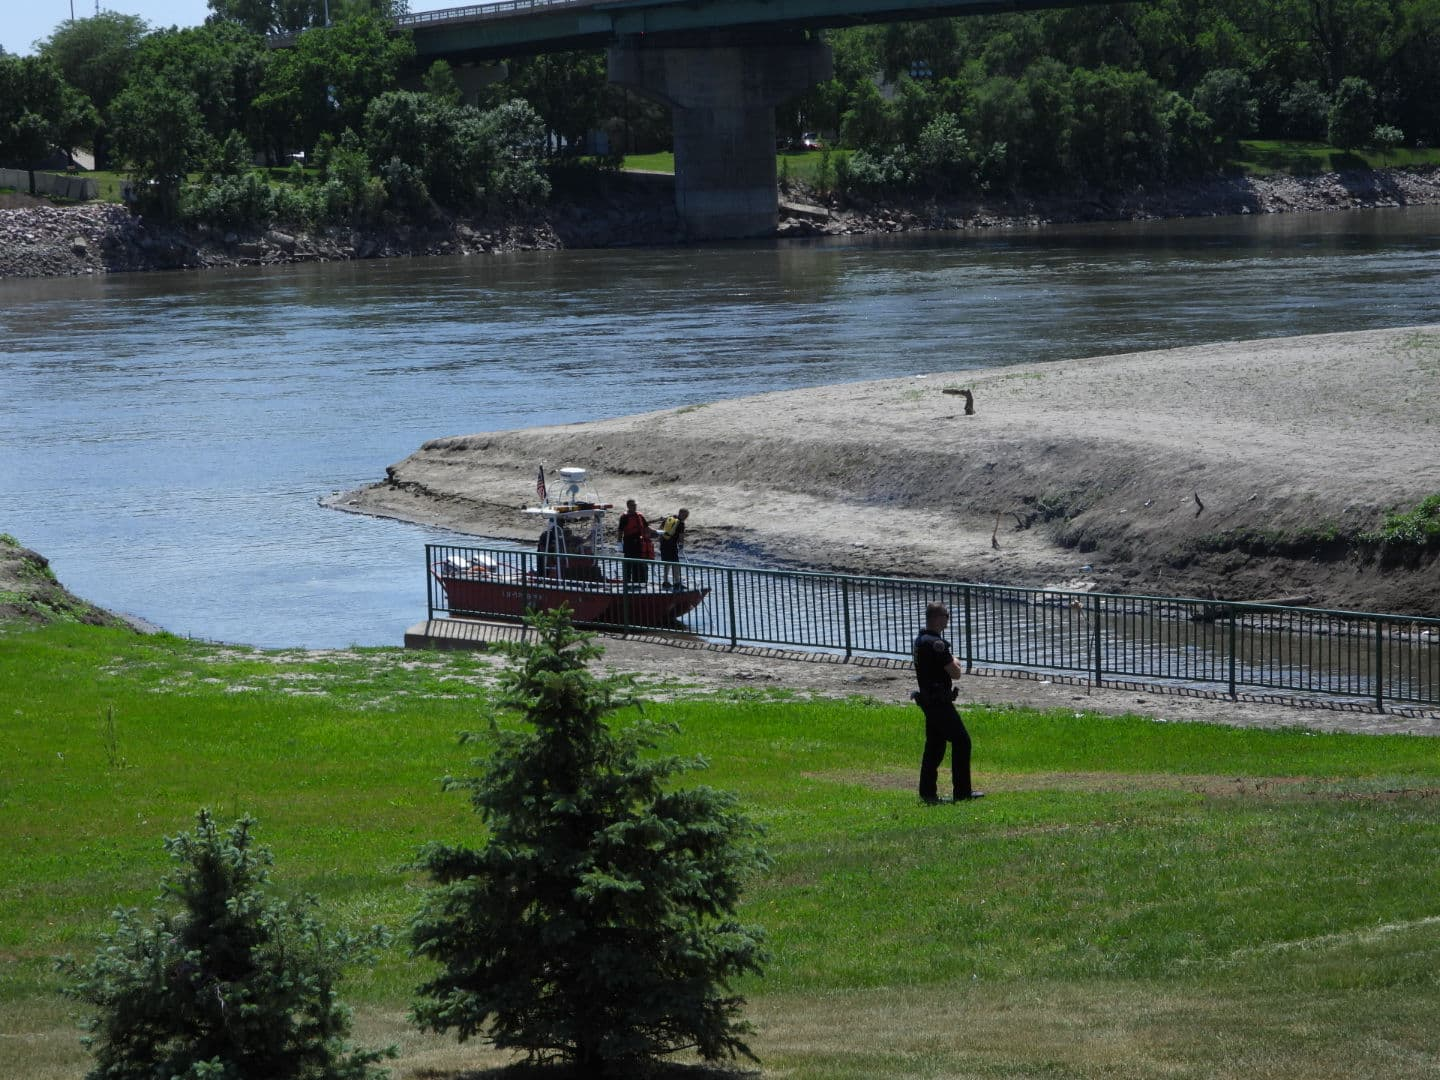 Male Body Recovered From Perry Creek at Missouri River